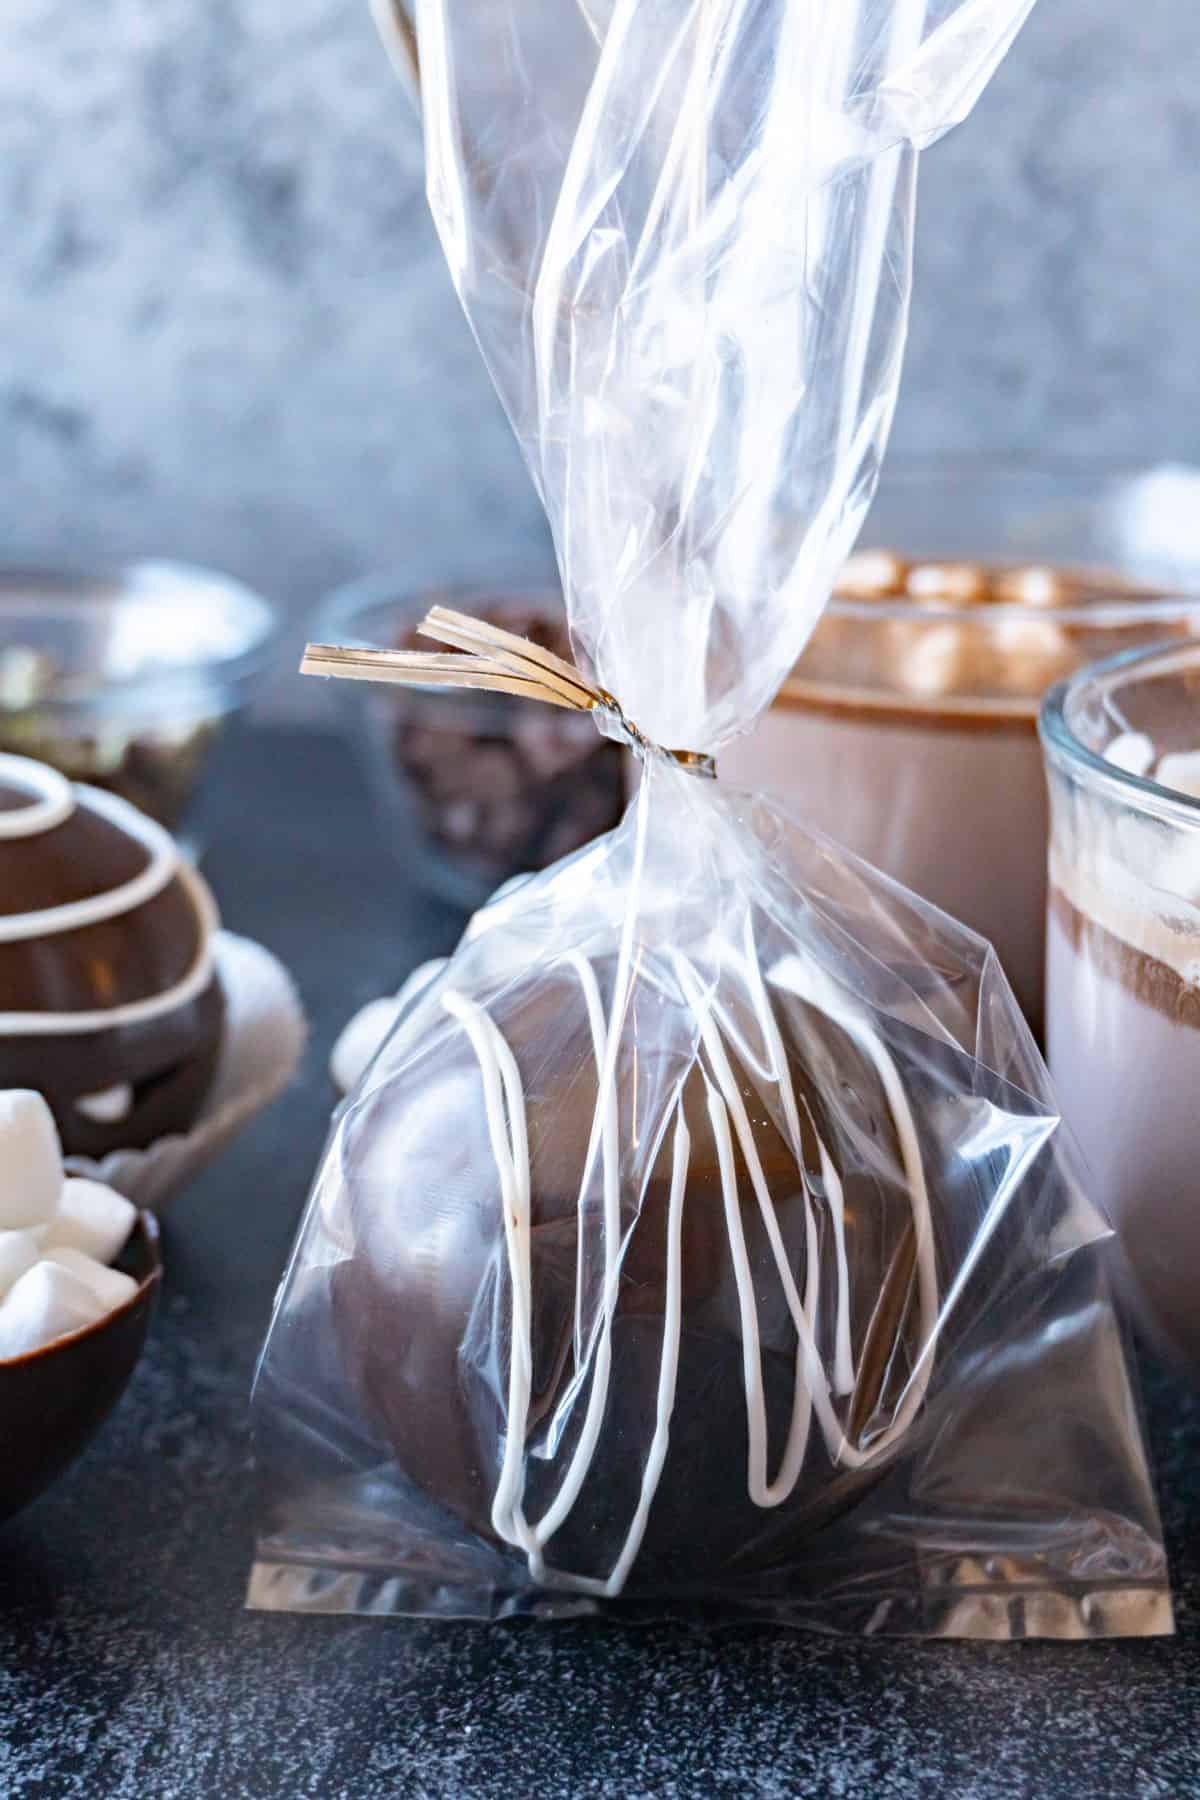 Hot chocolate bomb in a gift bag